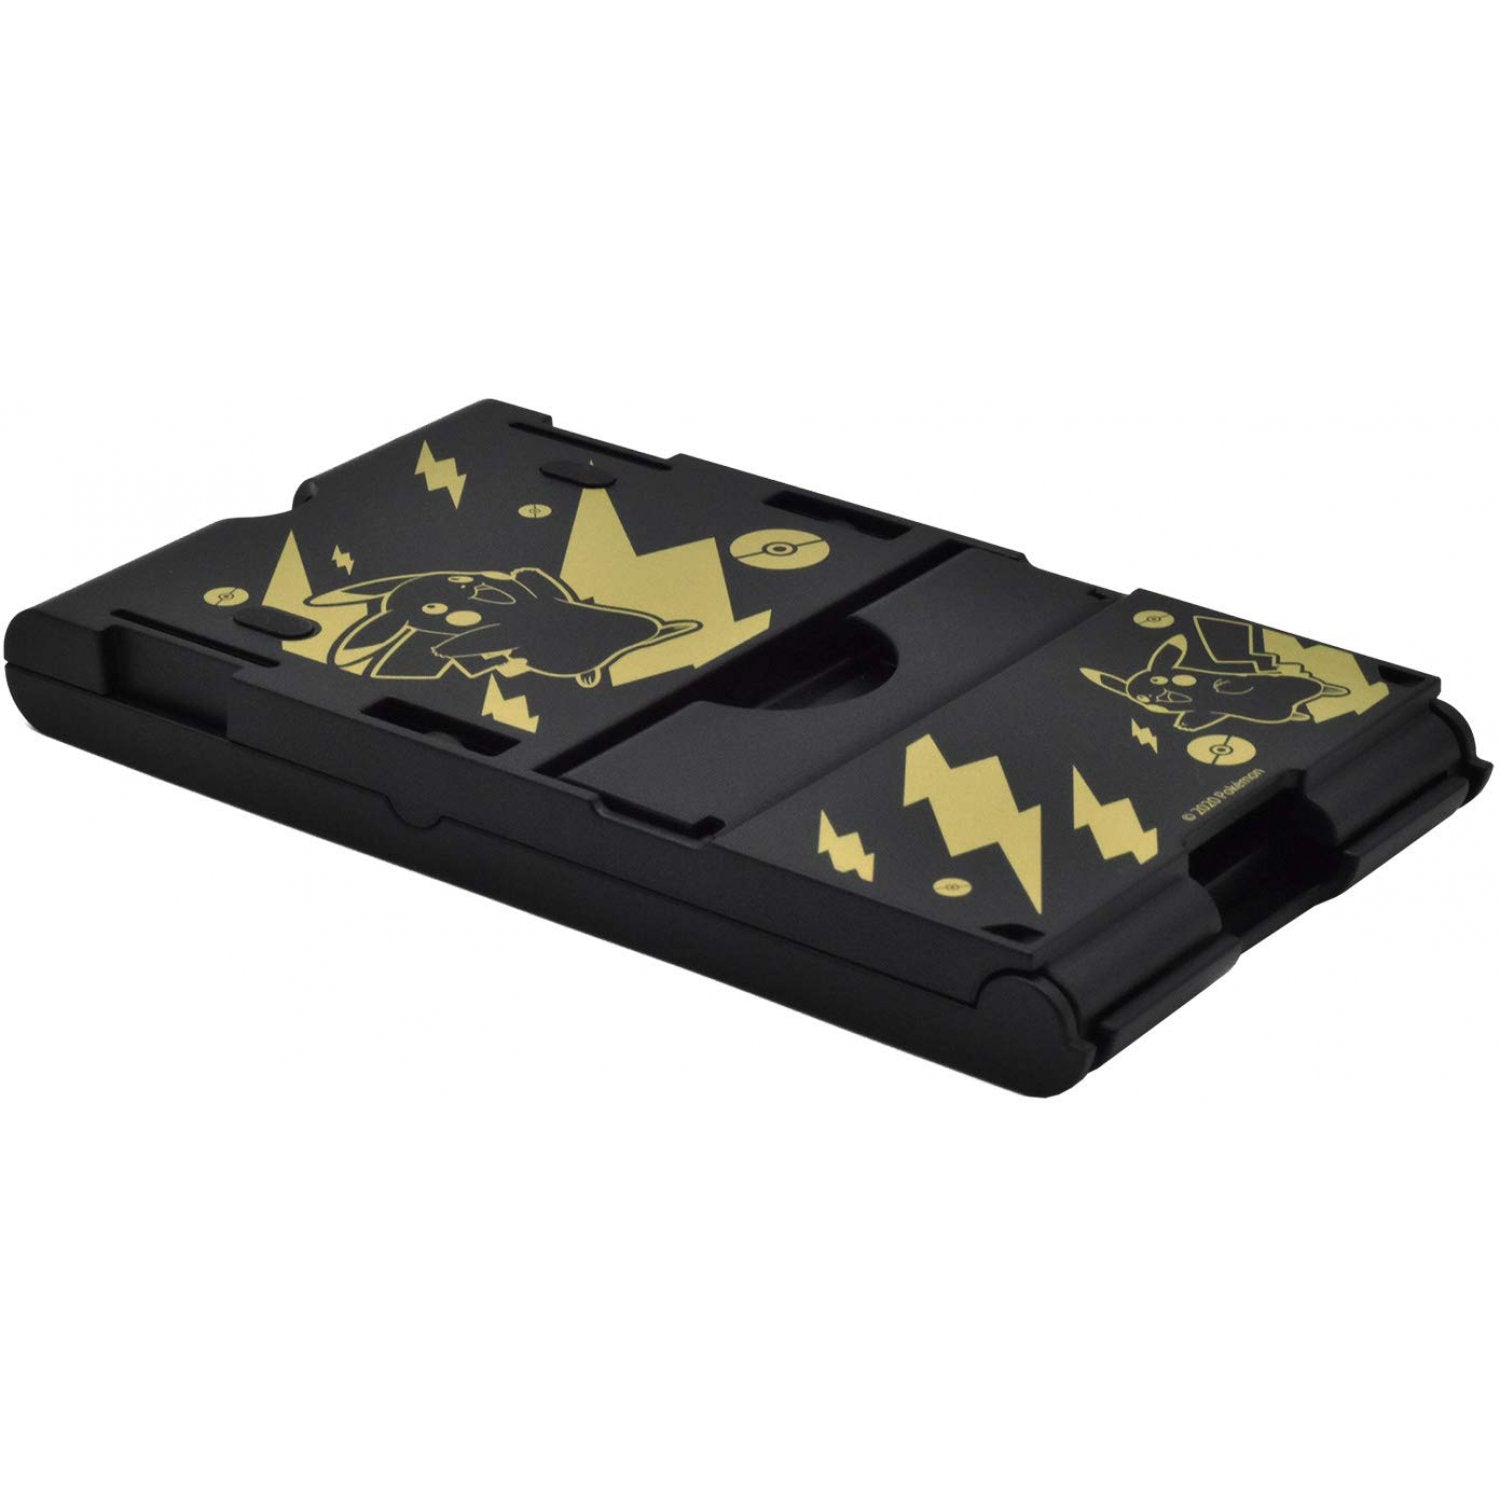 HORI PlayStand - Black & Gold (NSW-294A)